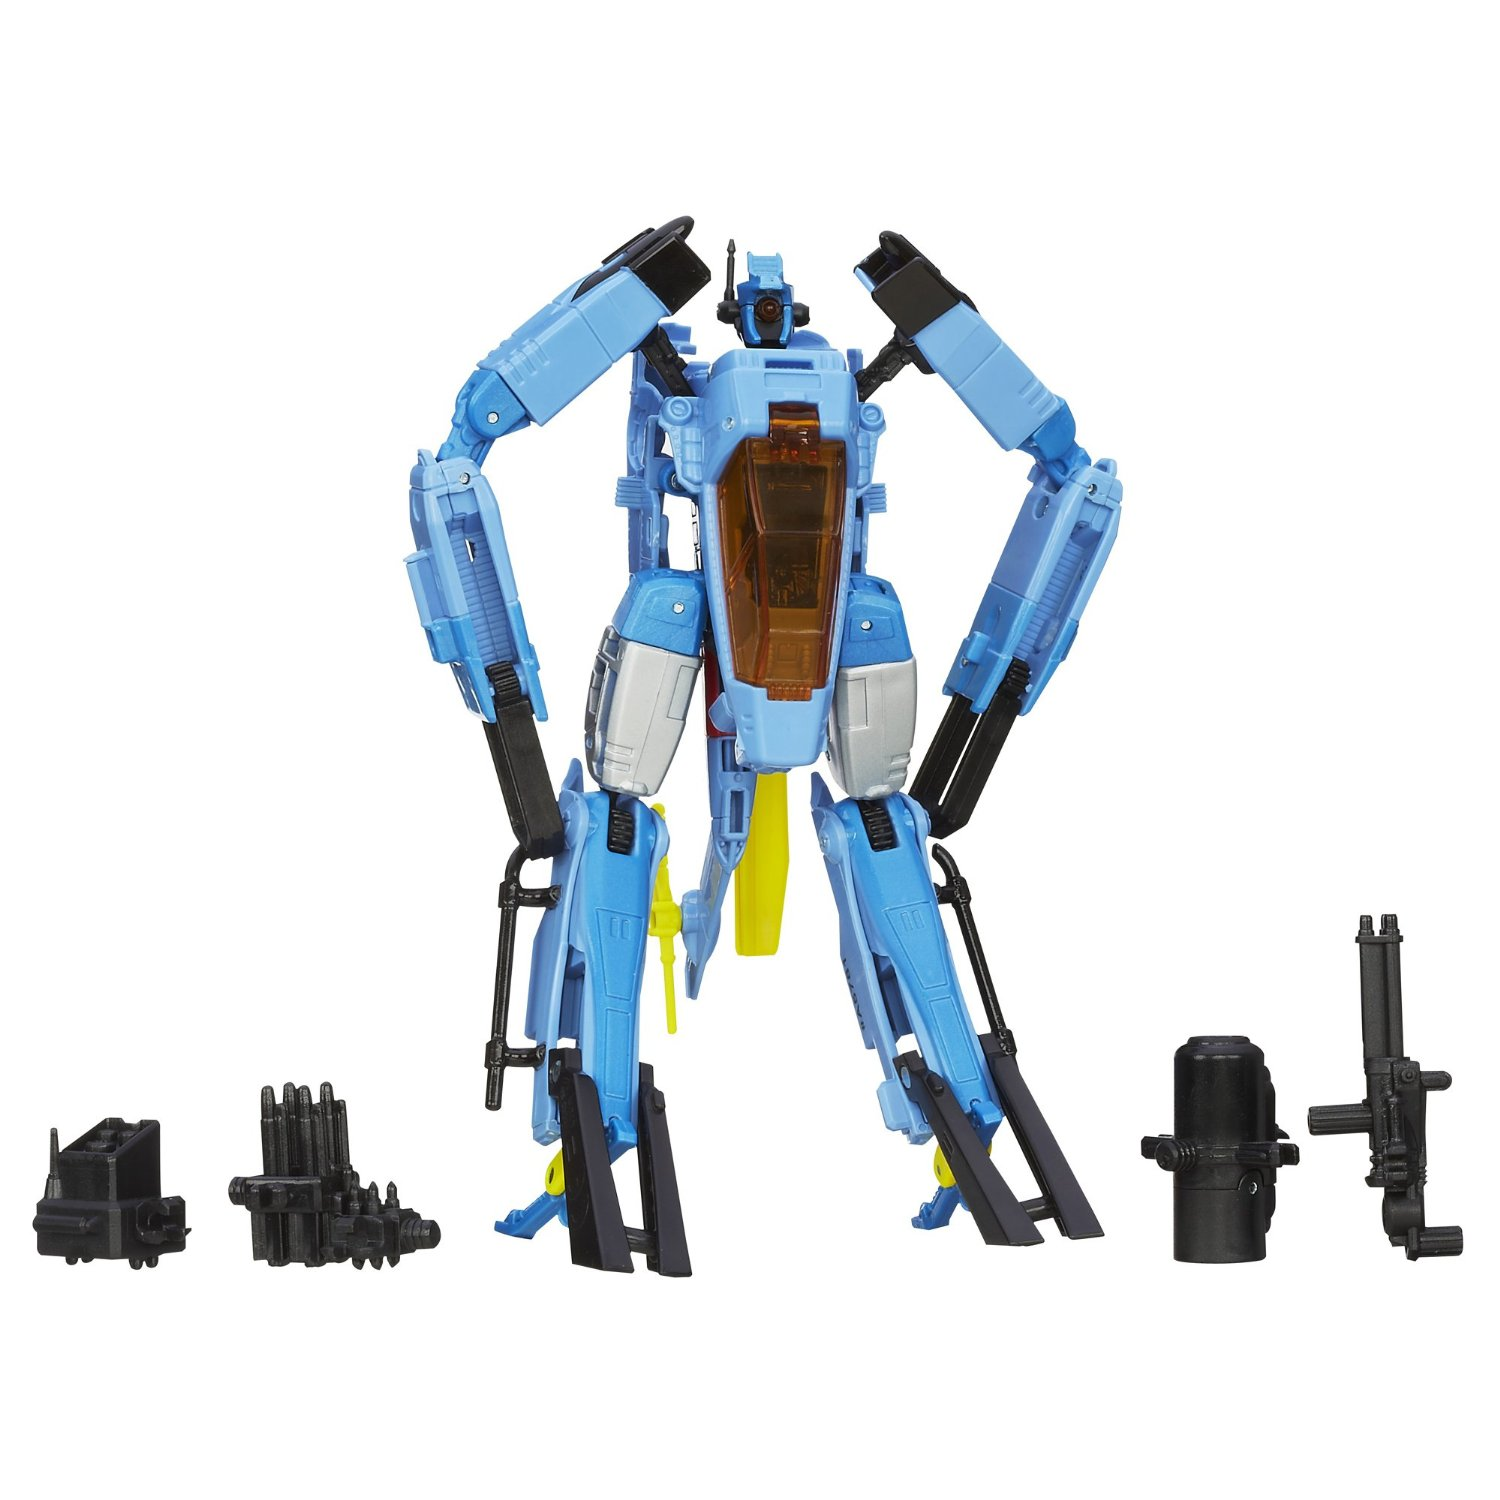 Transformers Generations 30th Anniversary Voyager Class Autobot Whirl Figure